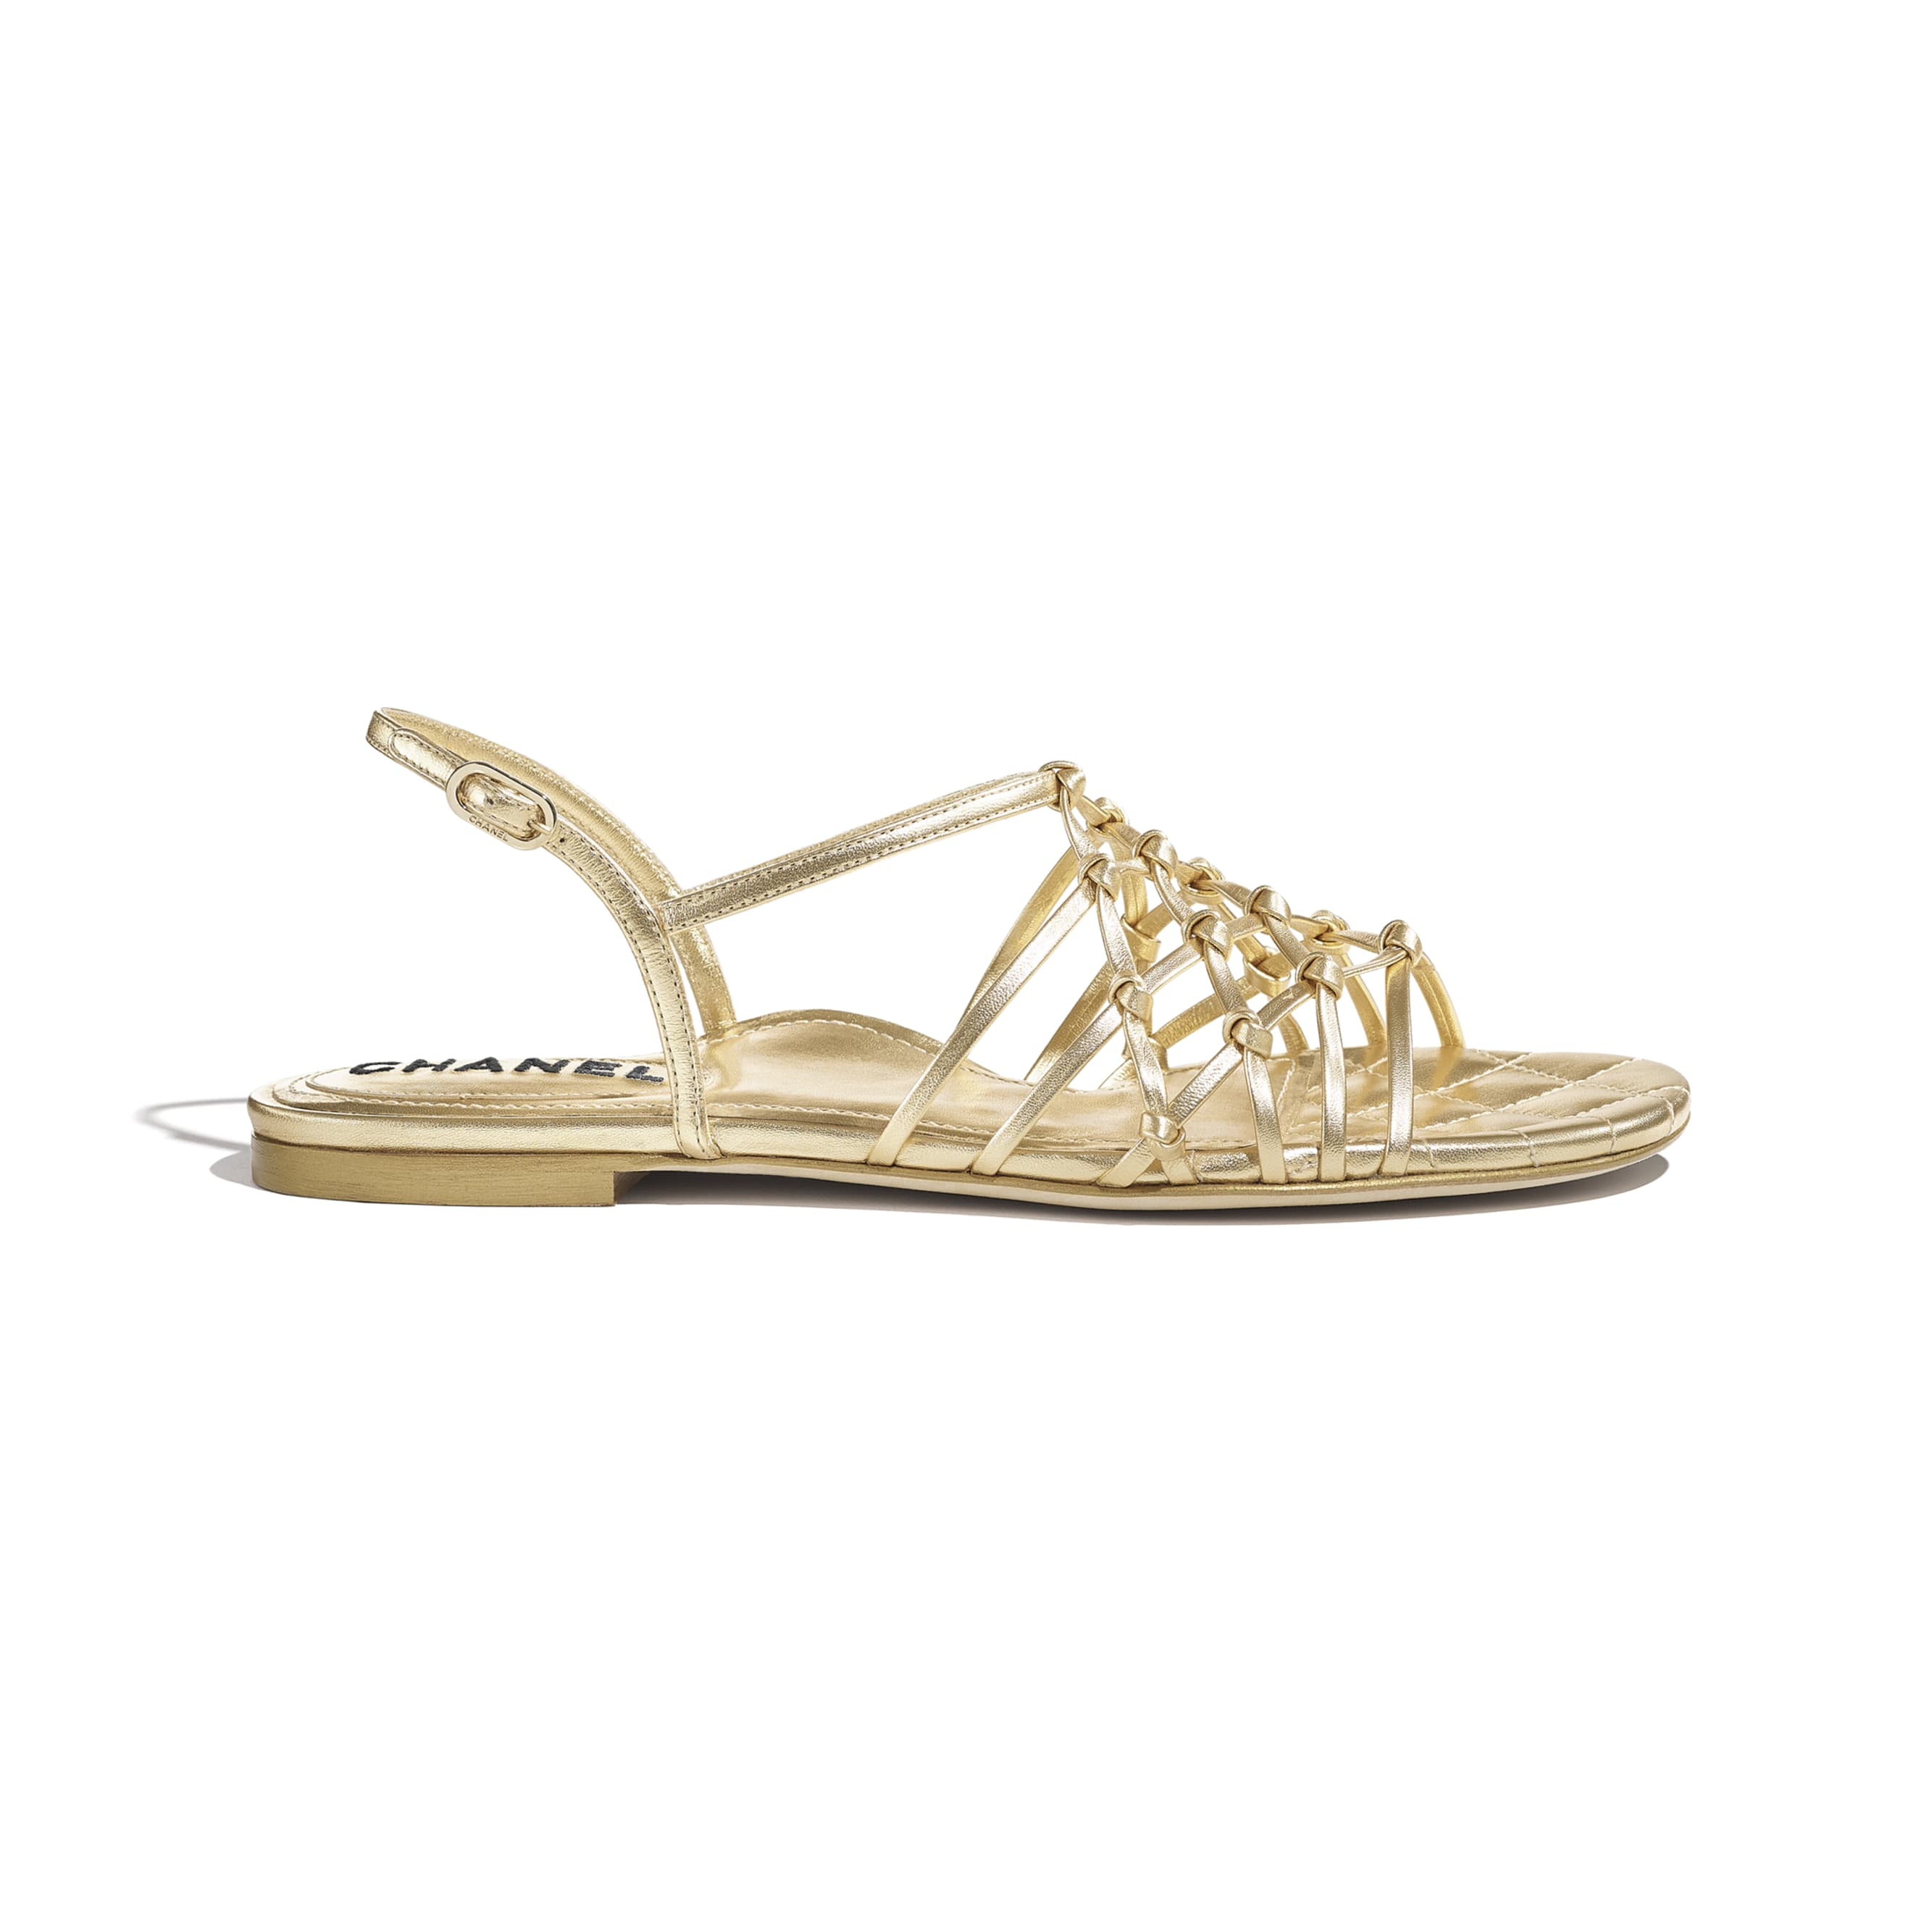 Sandals - Gold - Laminated Lambskin - CHANEL - Default view - see standard sized version